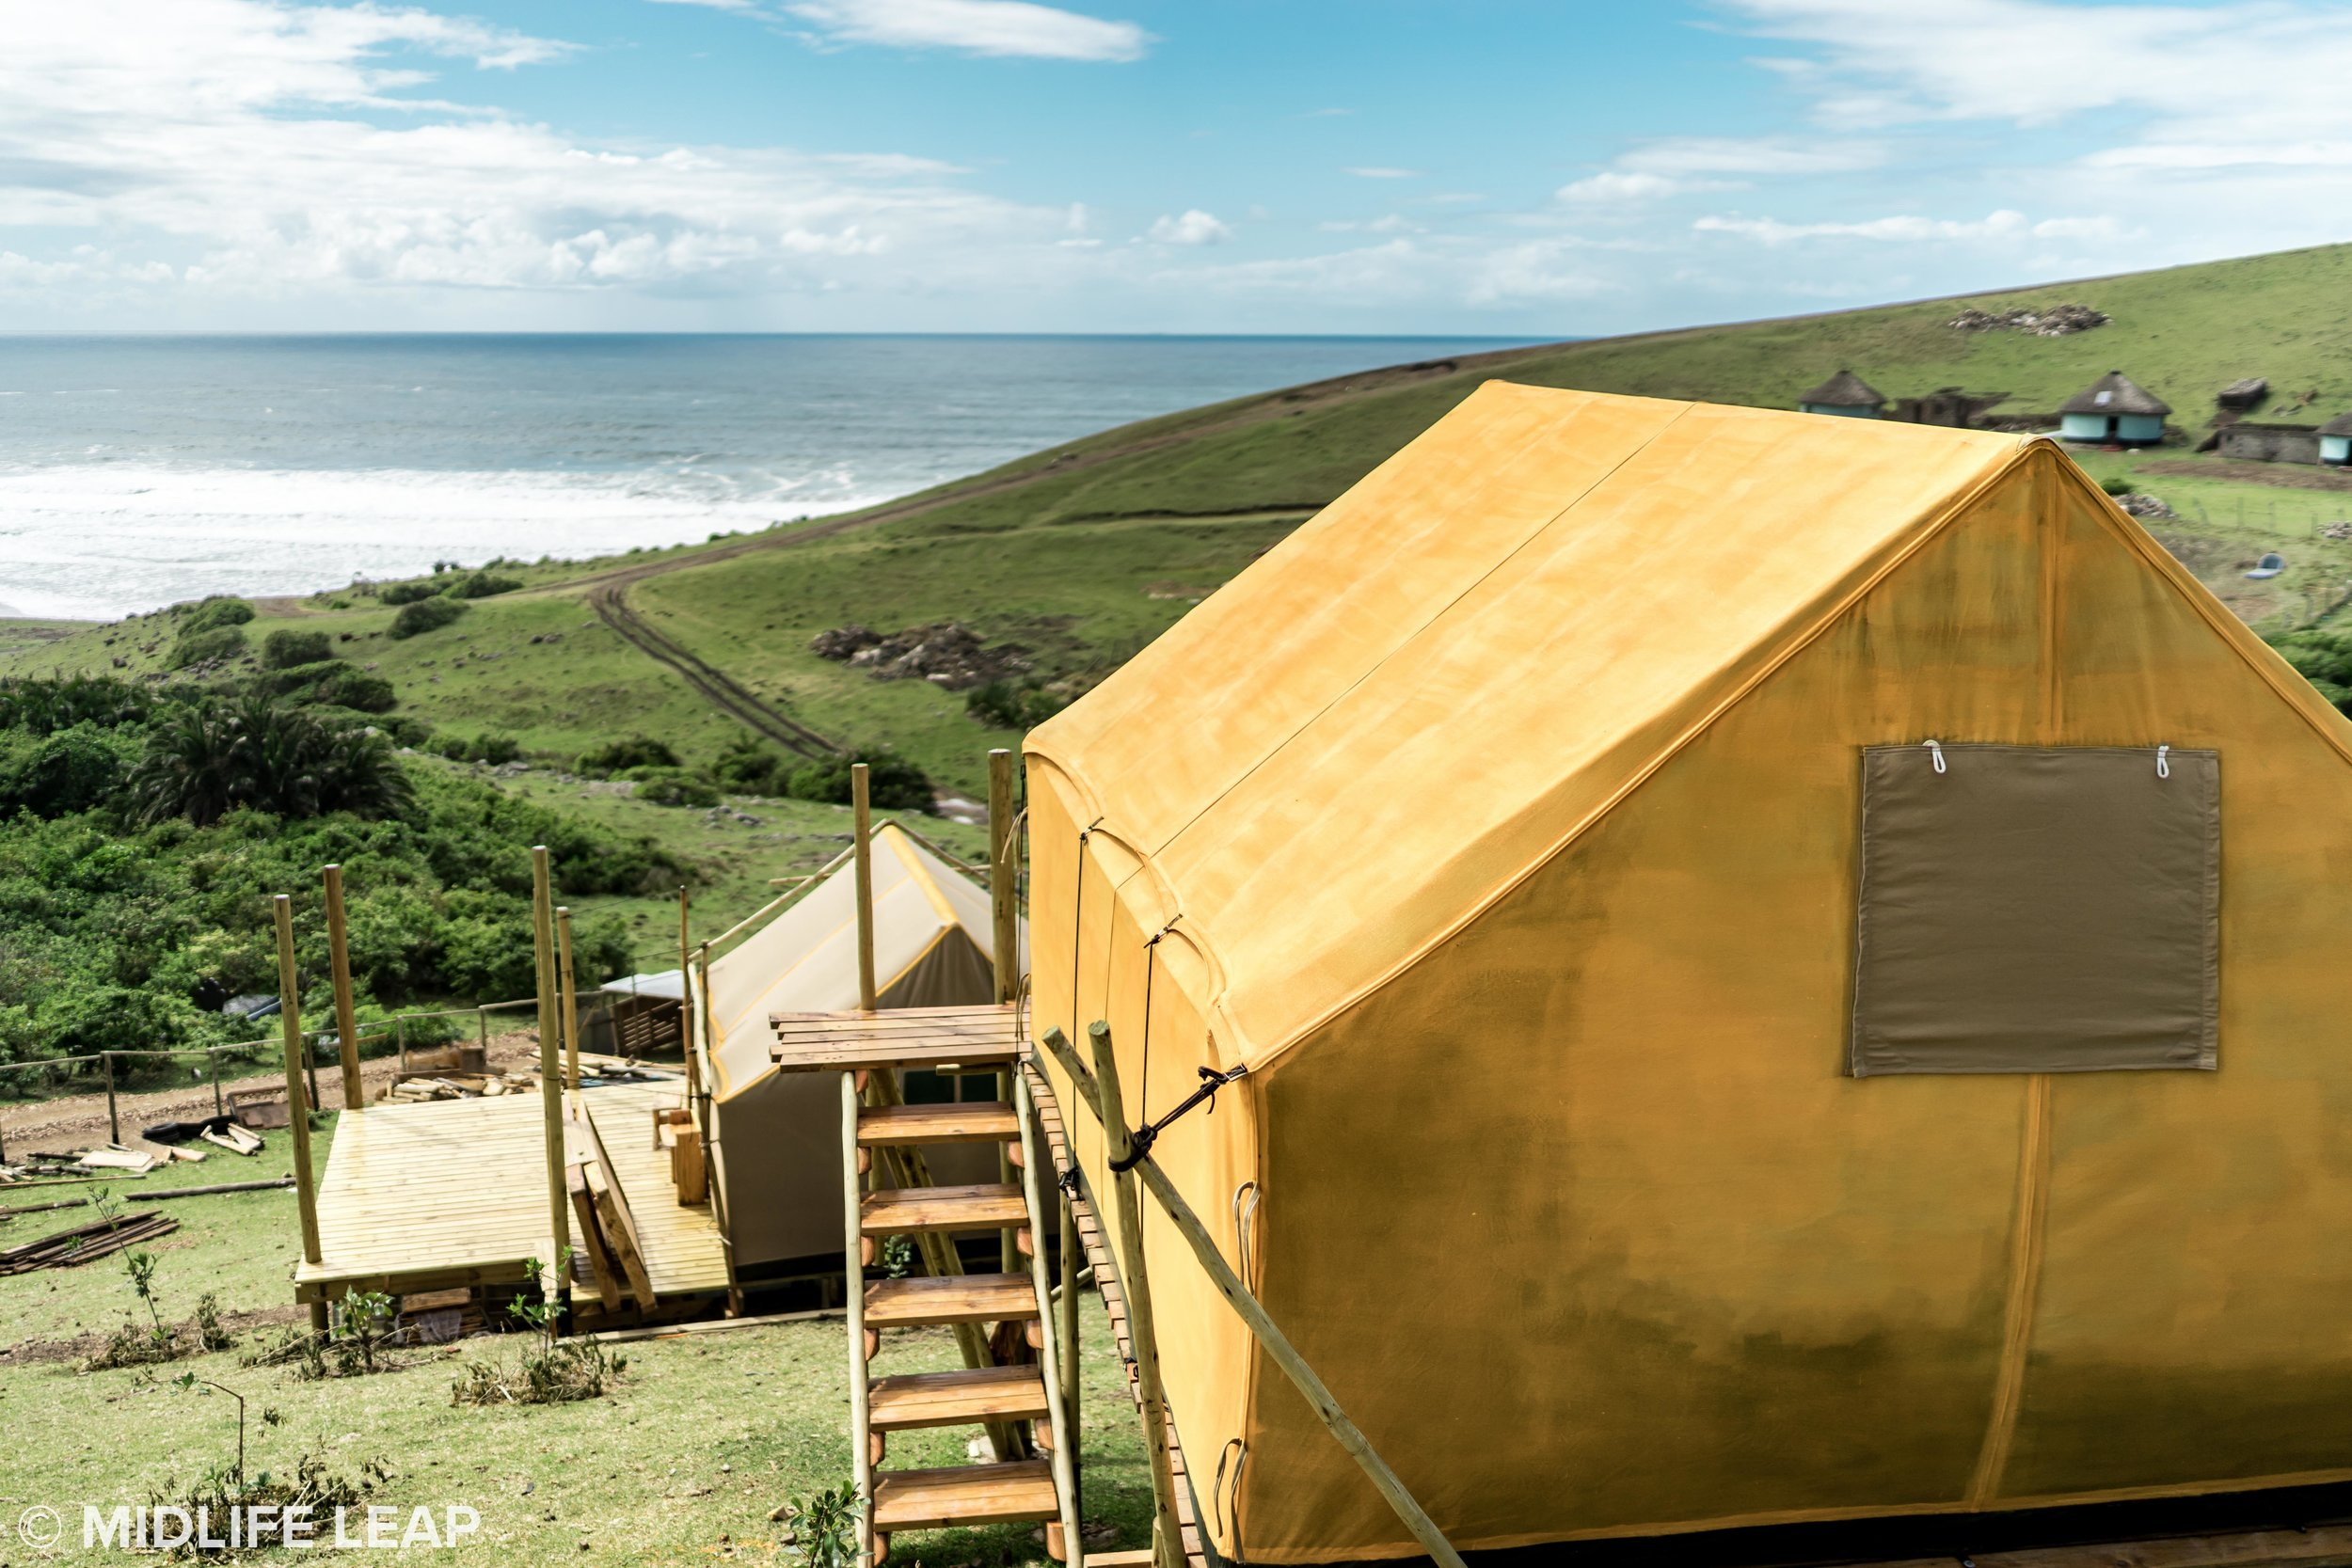 The two tents available at Wild Lubanzi